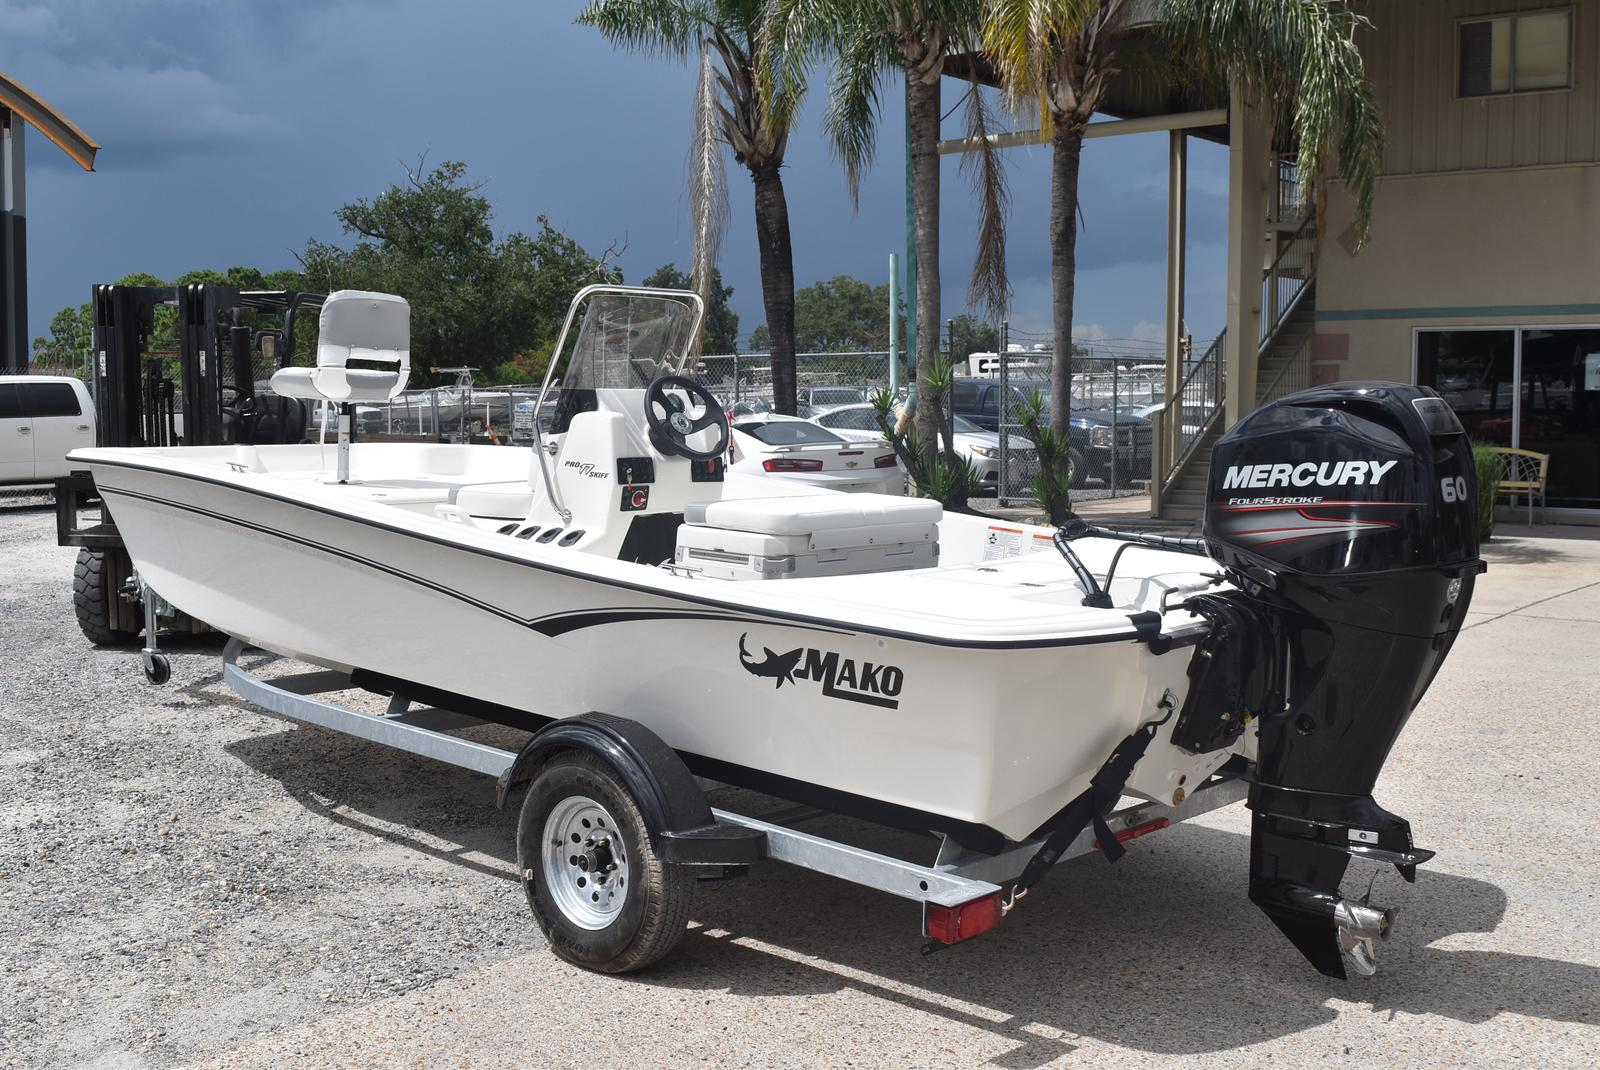 2020 Mako boat for sale, model of the boat is Pro Skiff 17, 75 ELPT & Image # 200 of 702